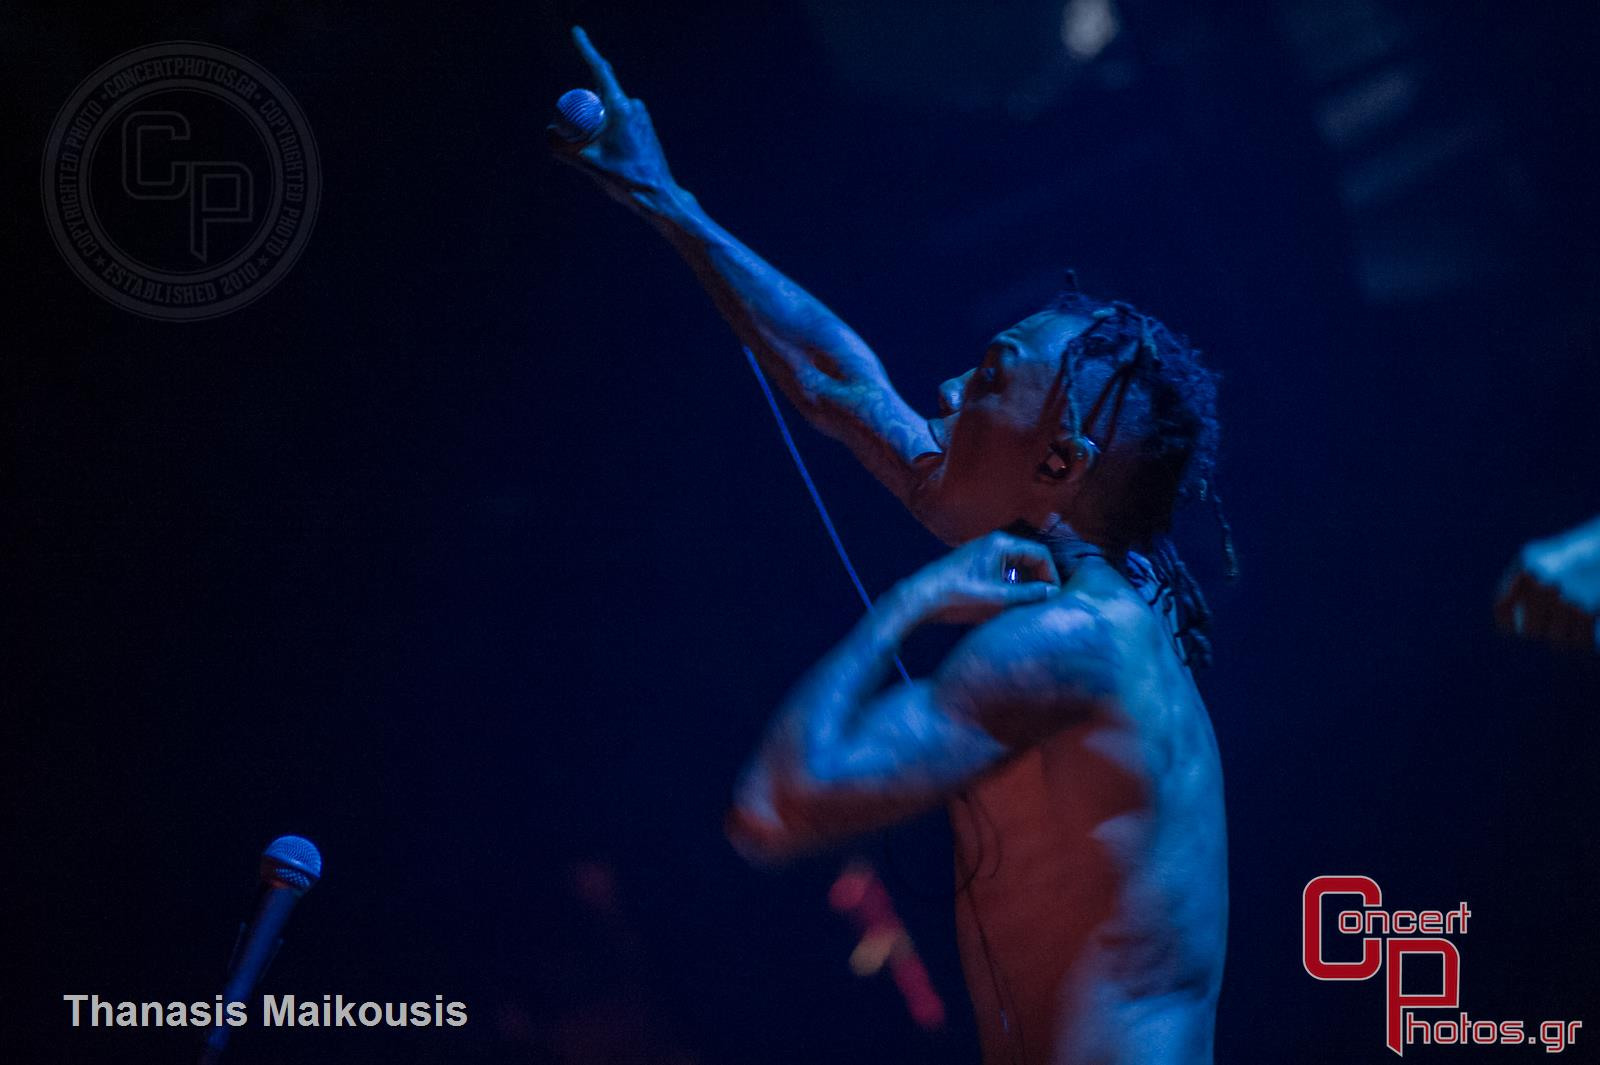 Tricky - Spectralfire-Tricky - Spectralfire photographer: Thanasis Maikousis - concertphotos_-3887